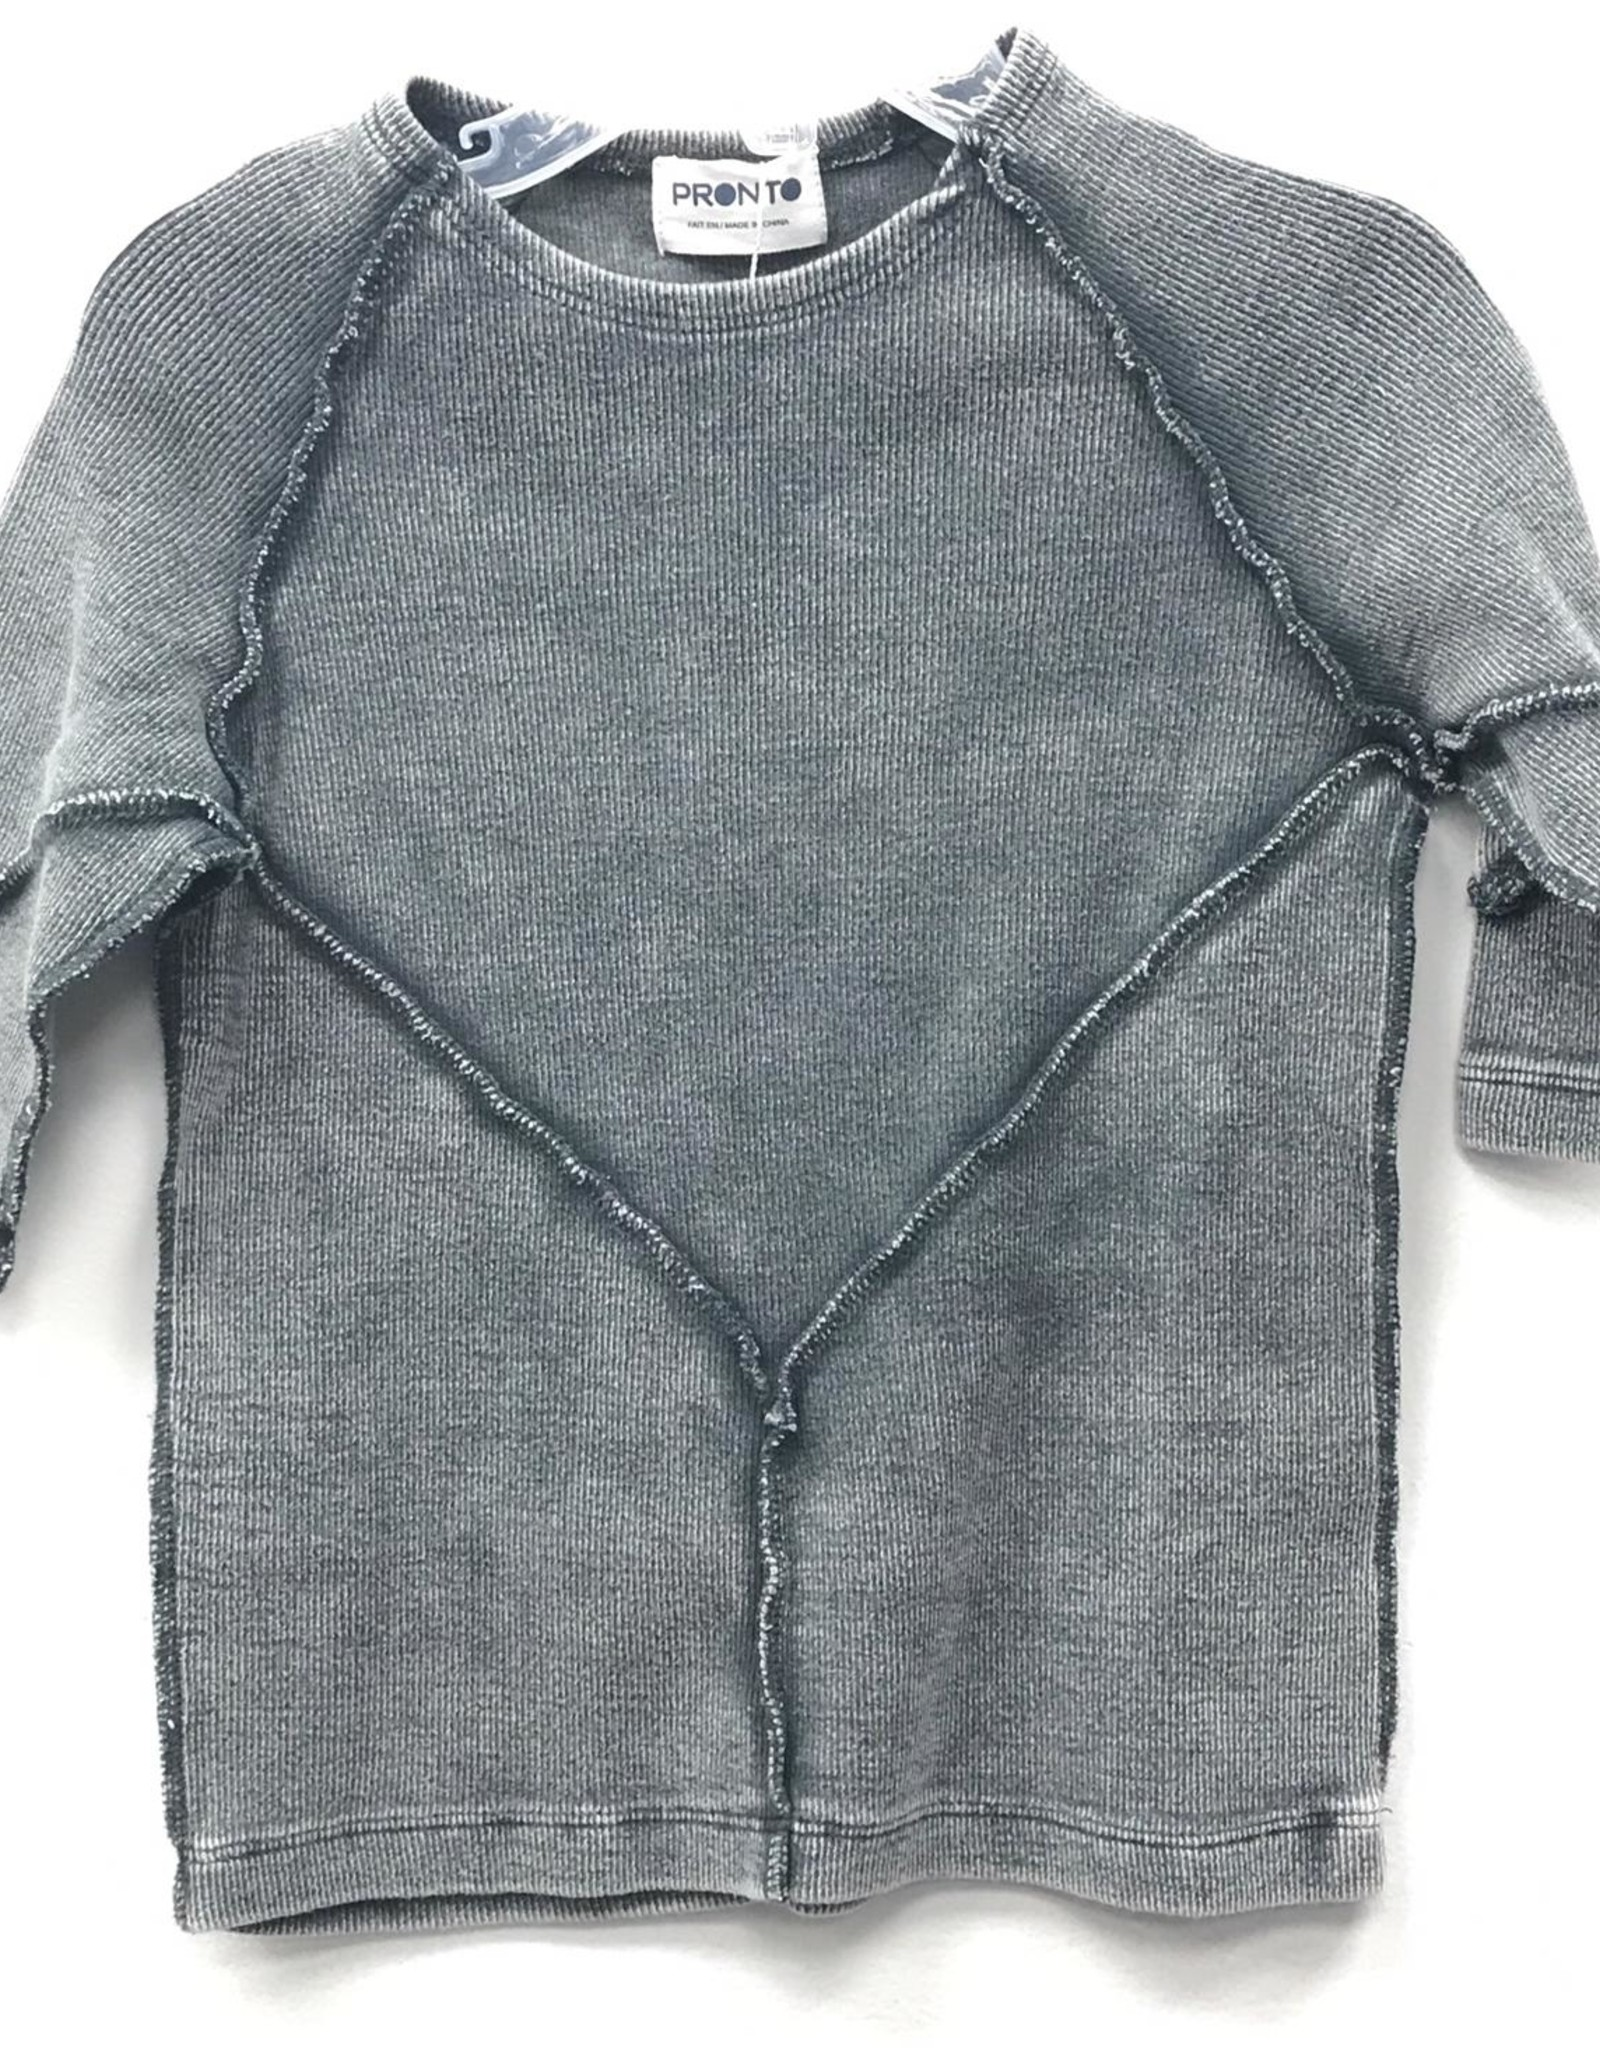 Pronto Pronto Top with Stitch Detail